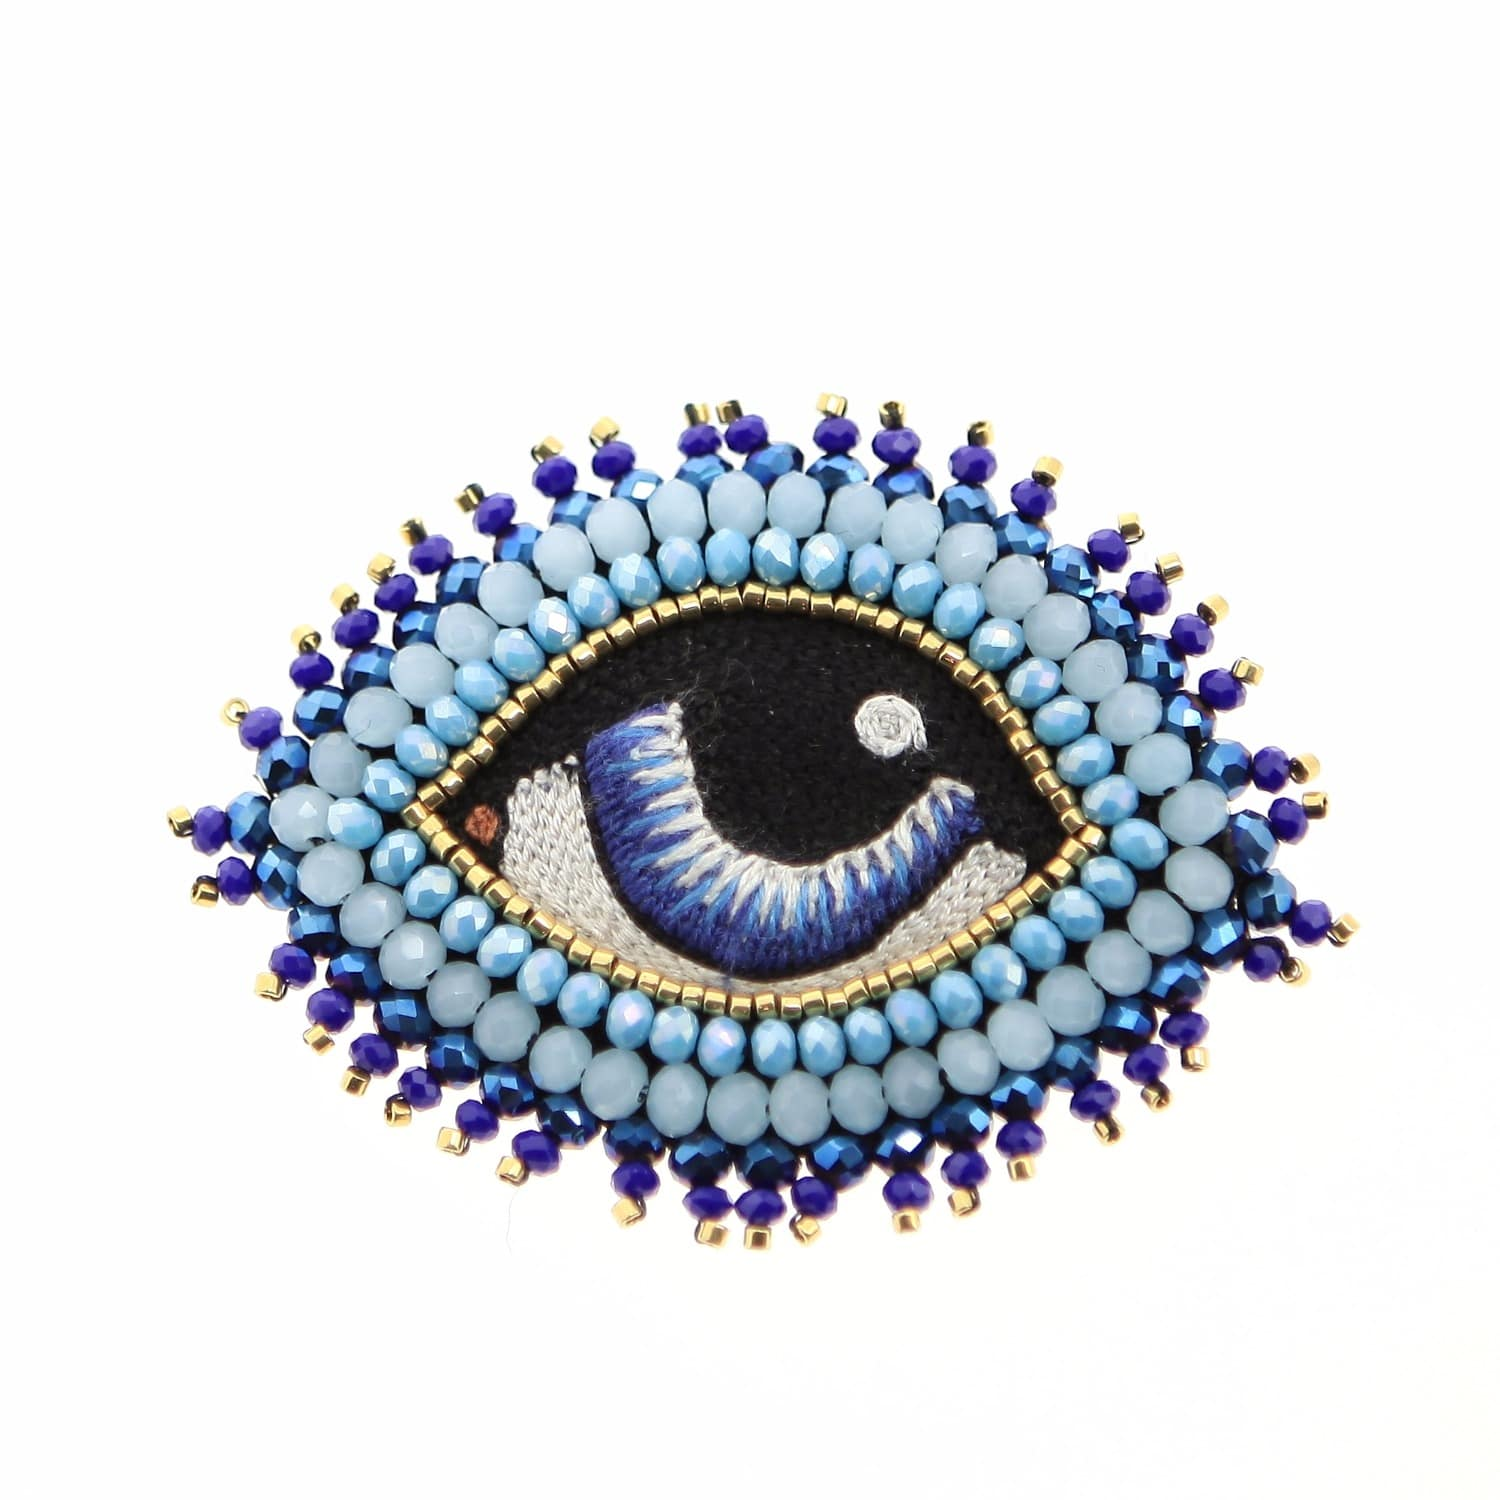 c eye leste mogador brooch product broche bleu blue en m celeste